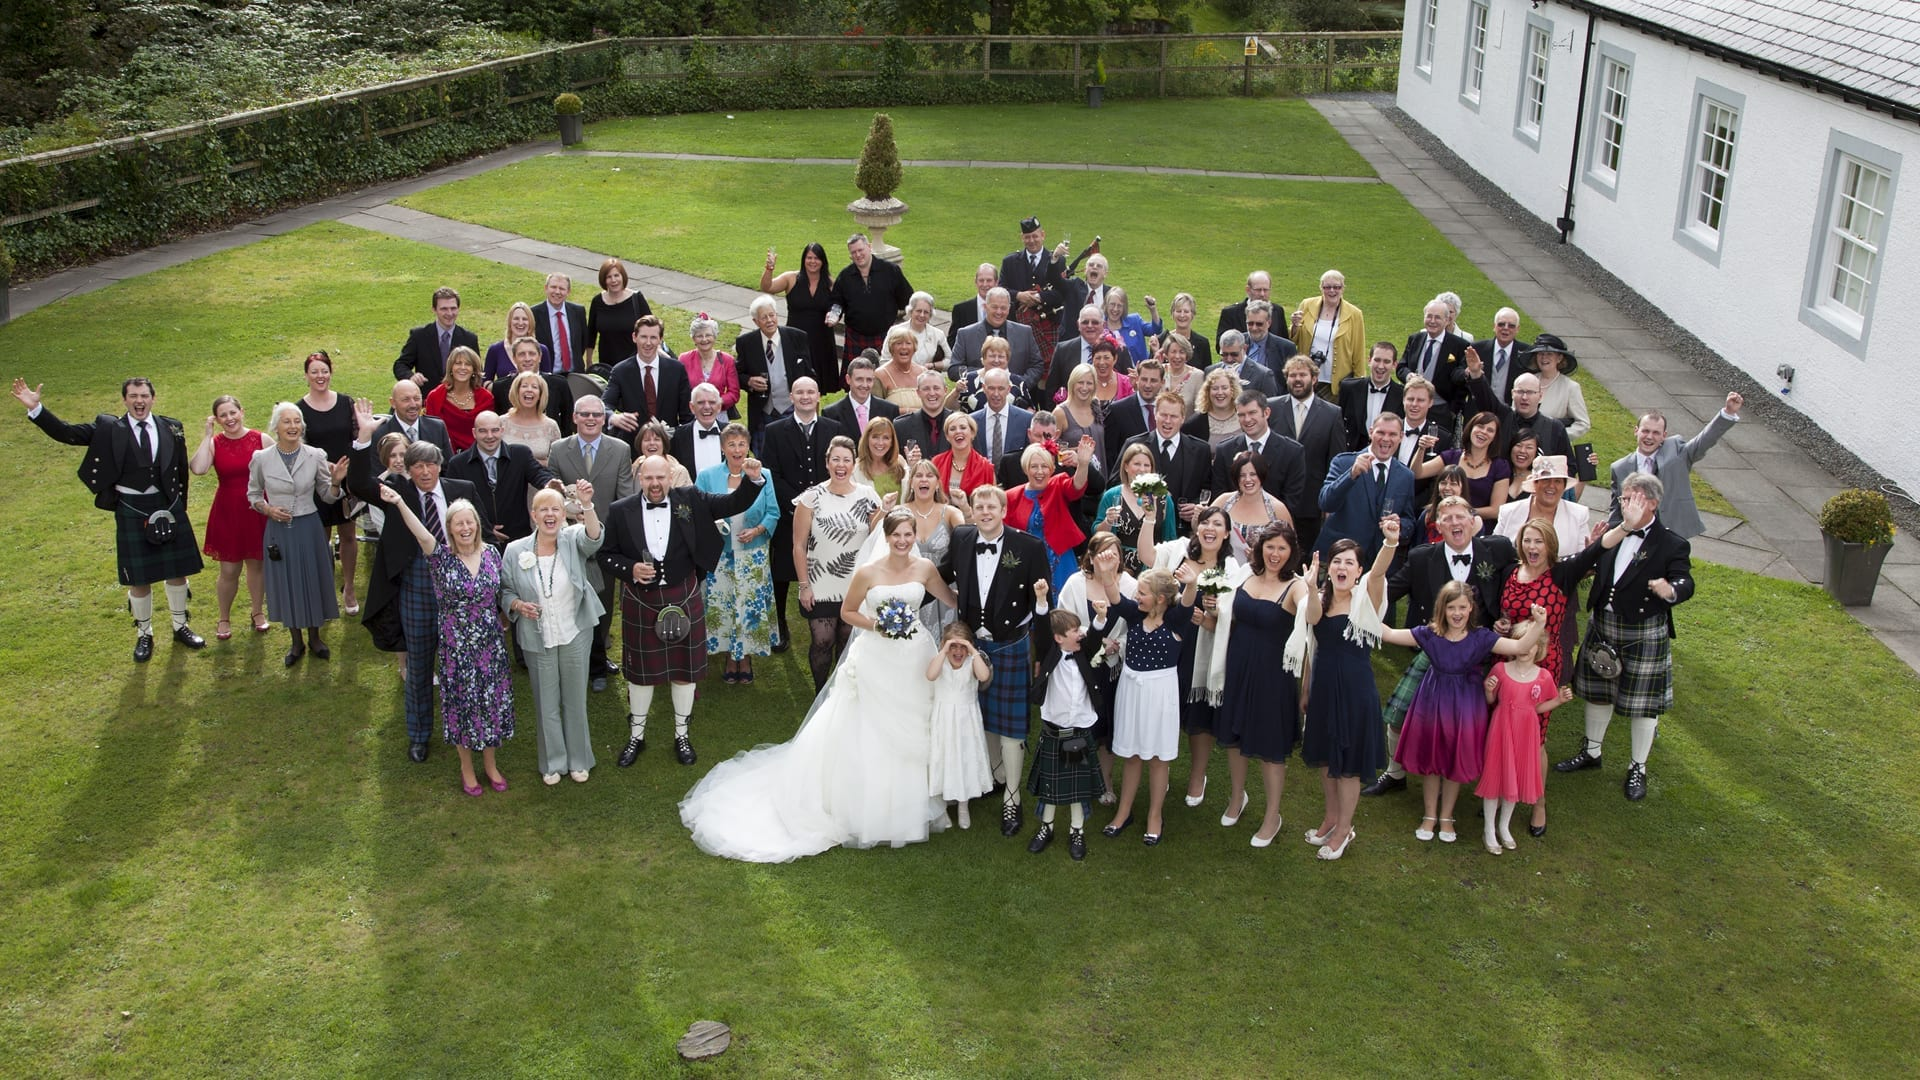 A wedding party in the courtyard at Barony Castle